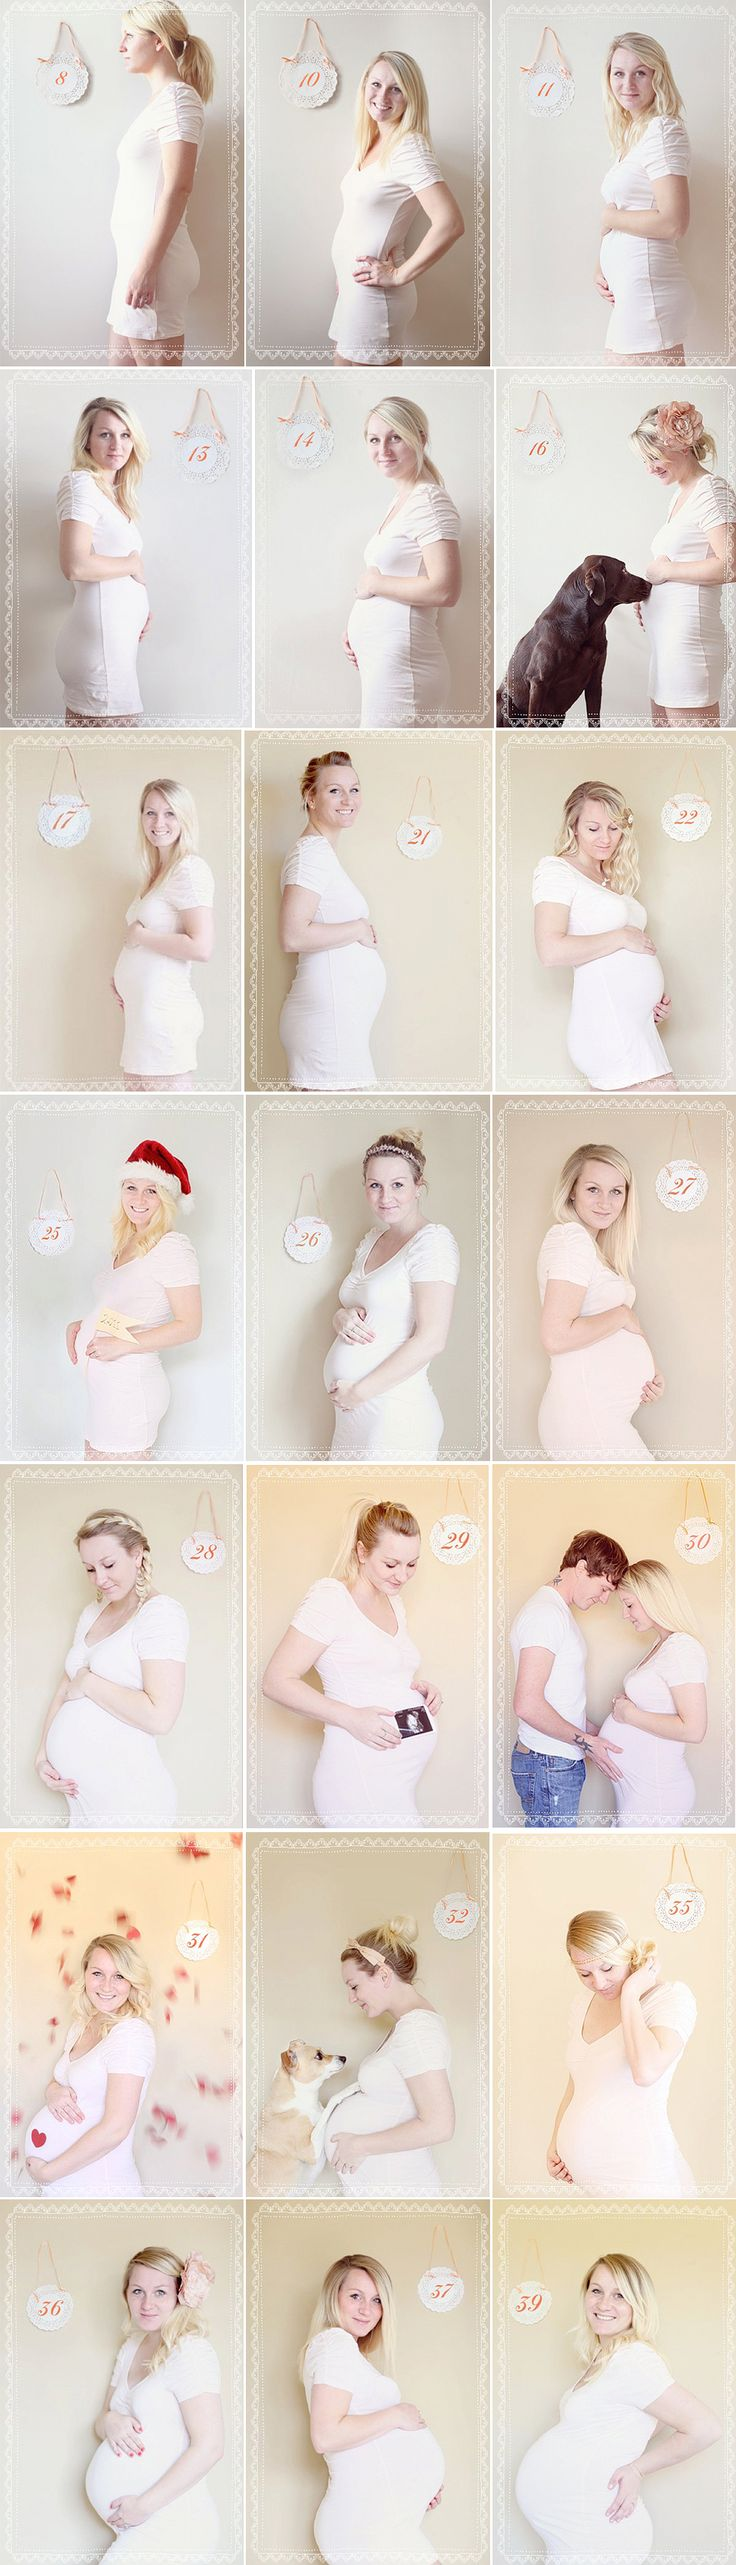 belly tracking: Pregnancy Pictures, Photo Ideas, Maternity Pictures, Baby Bump, Cute Ideas, Pregnancy Photo, Pregnancy Pics, Bump Photo, Maternity Photo